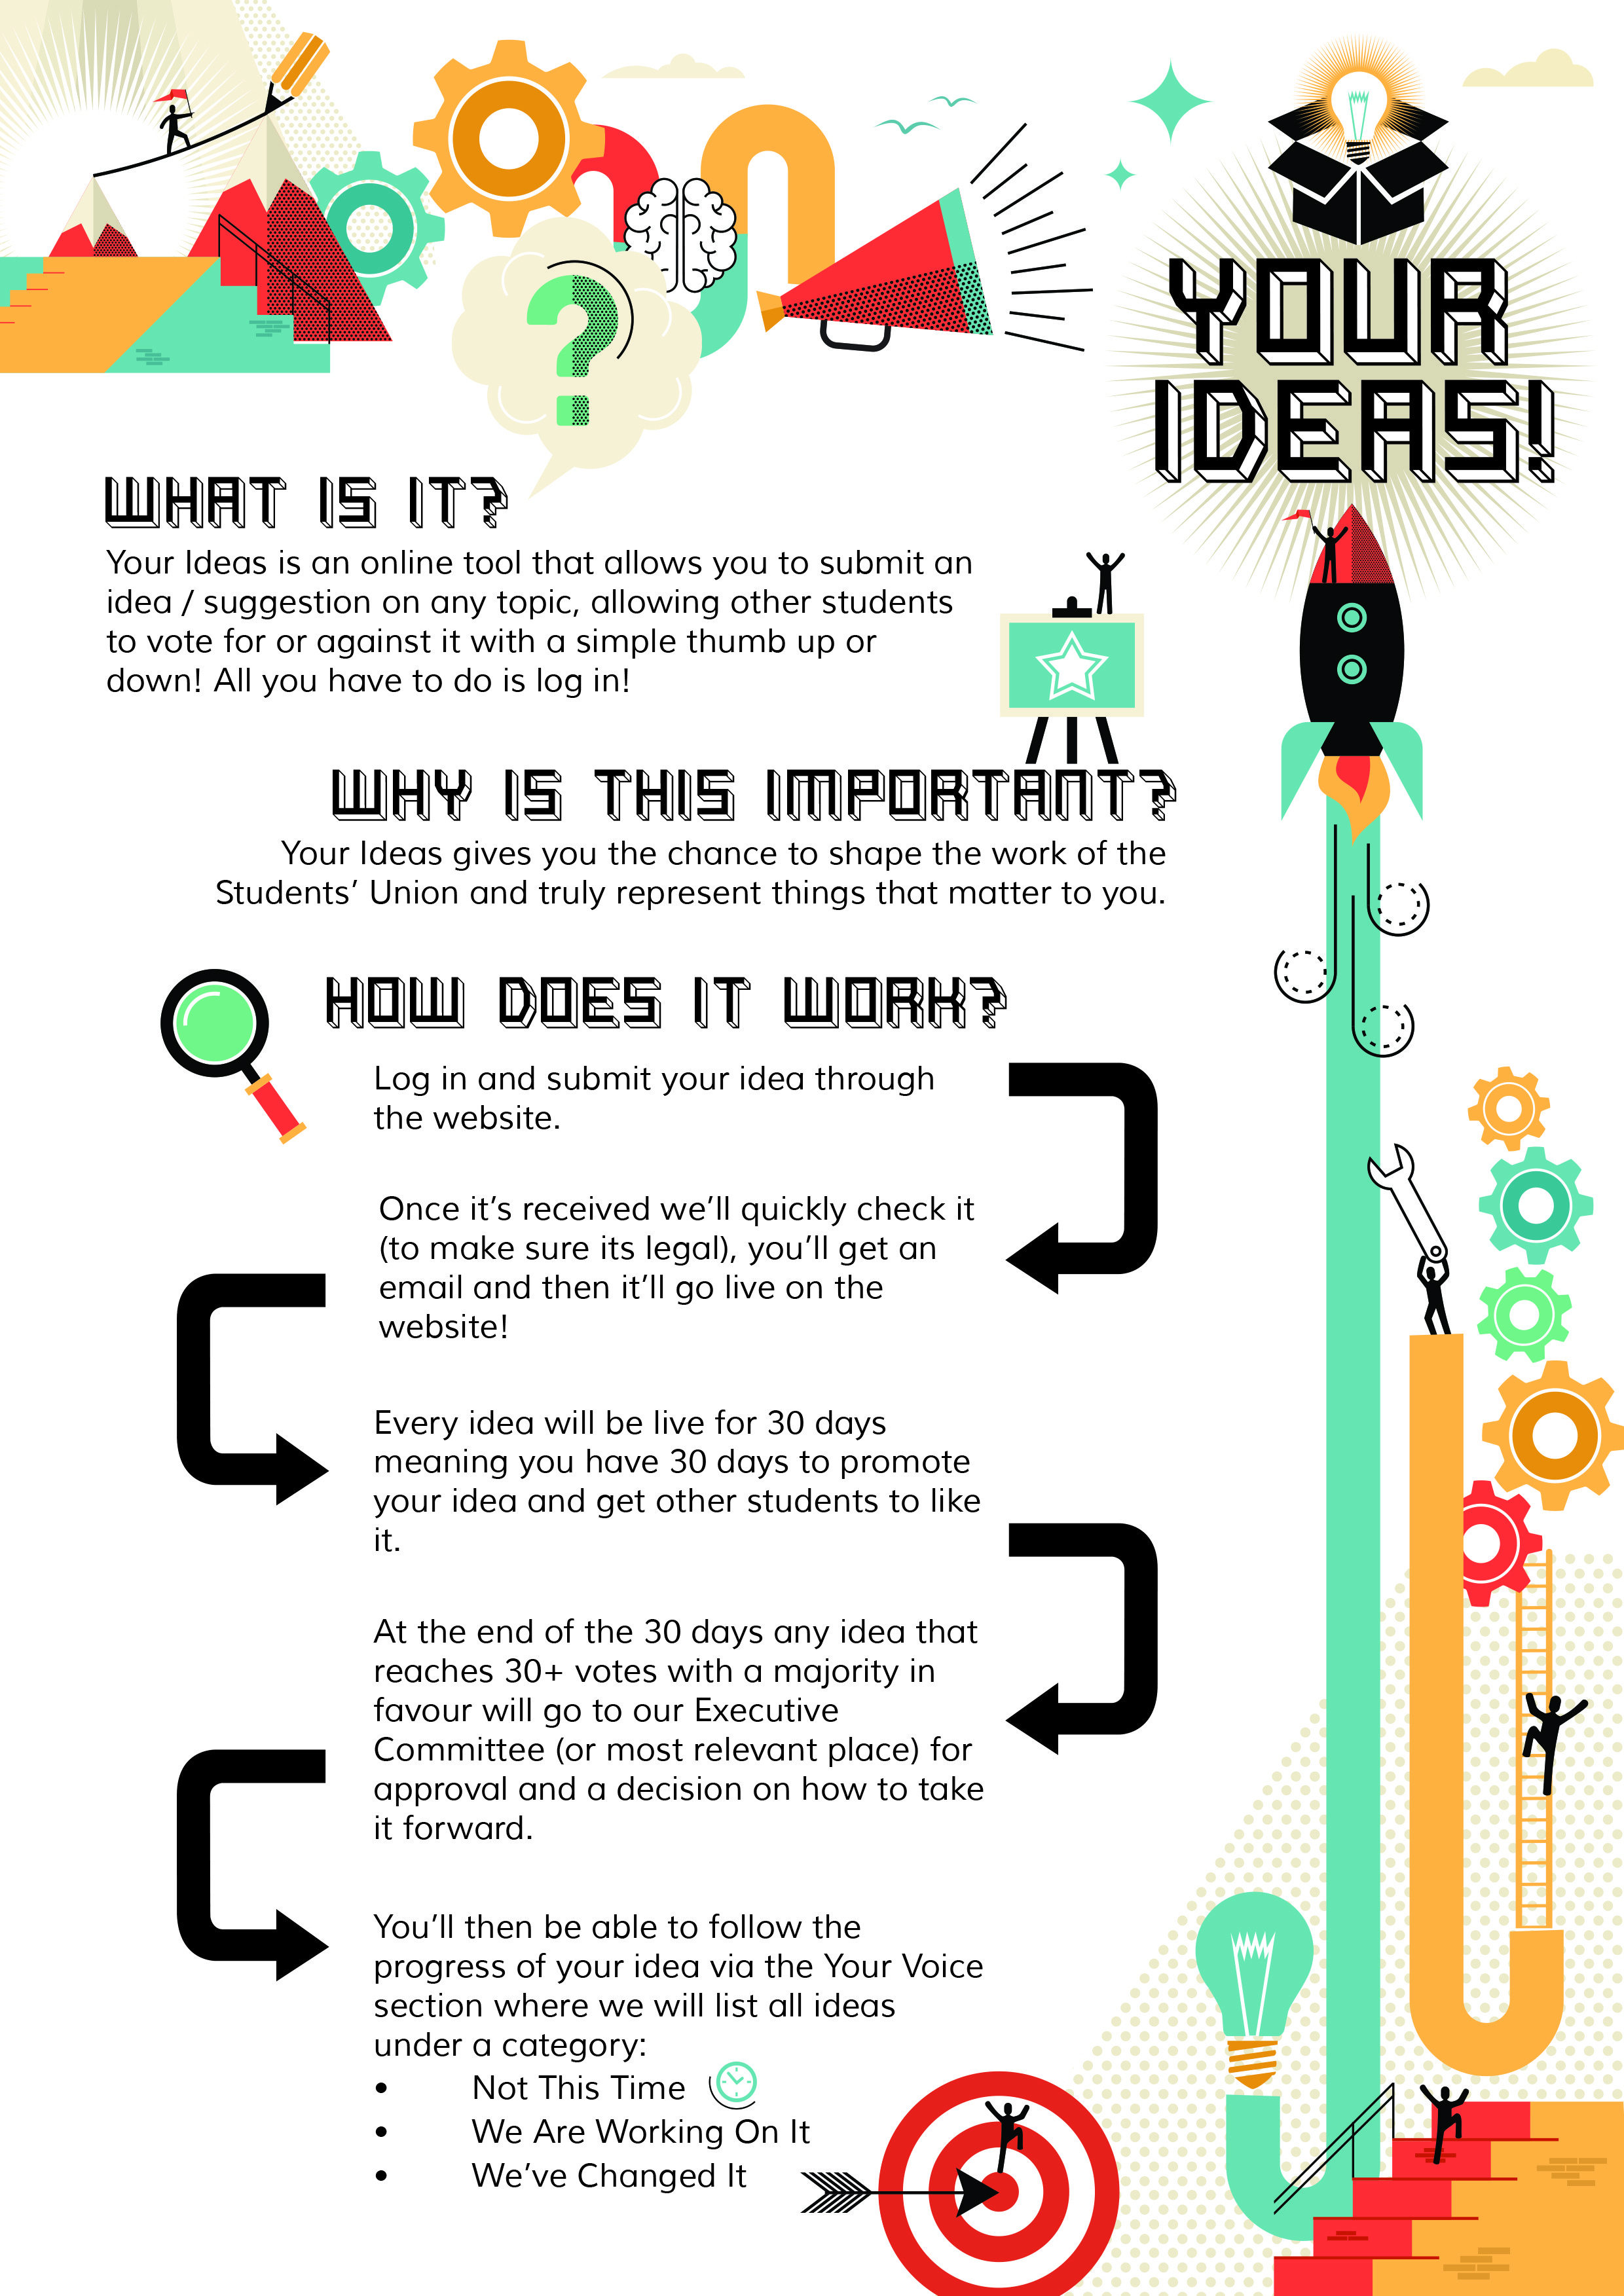 your ideas edge hill university students union